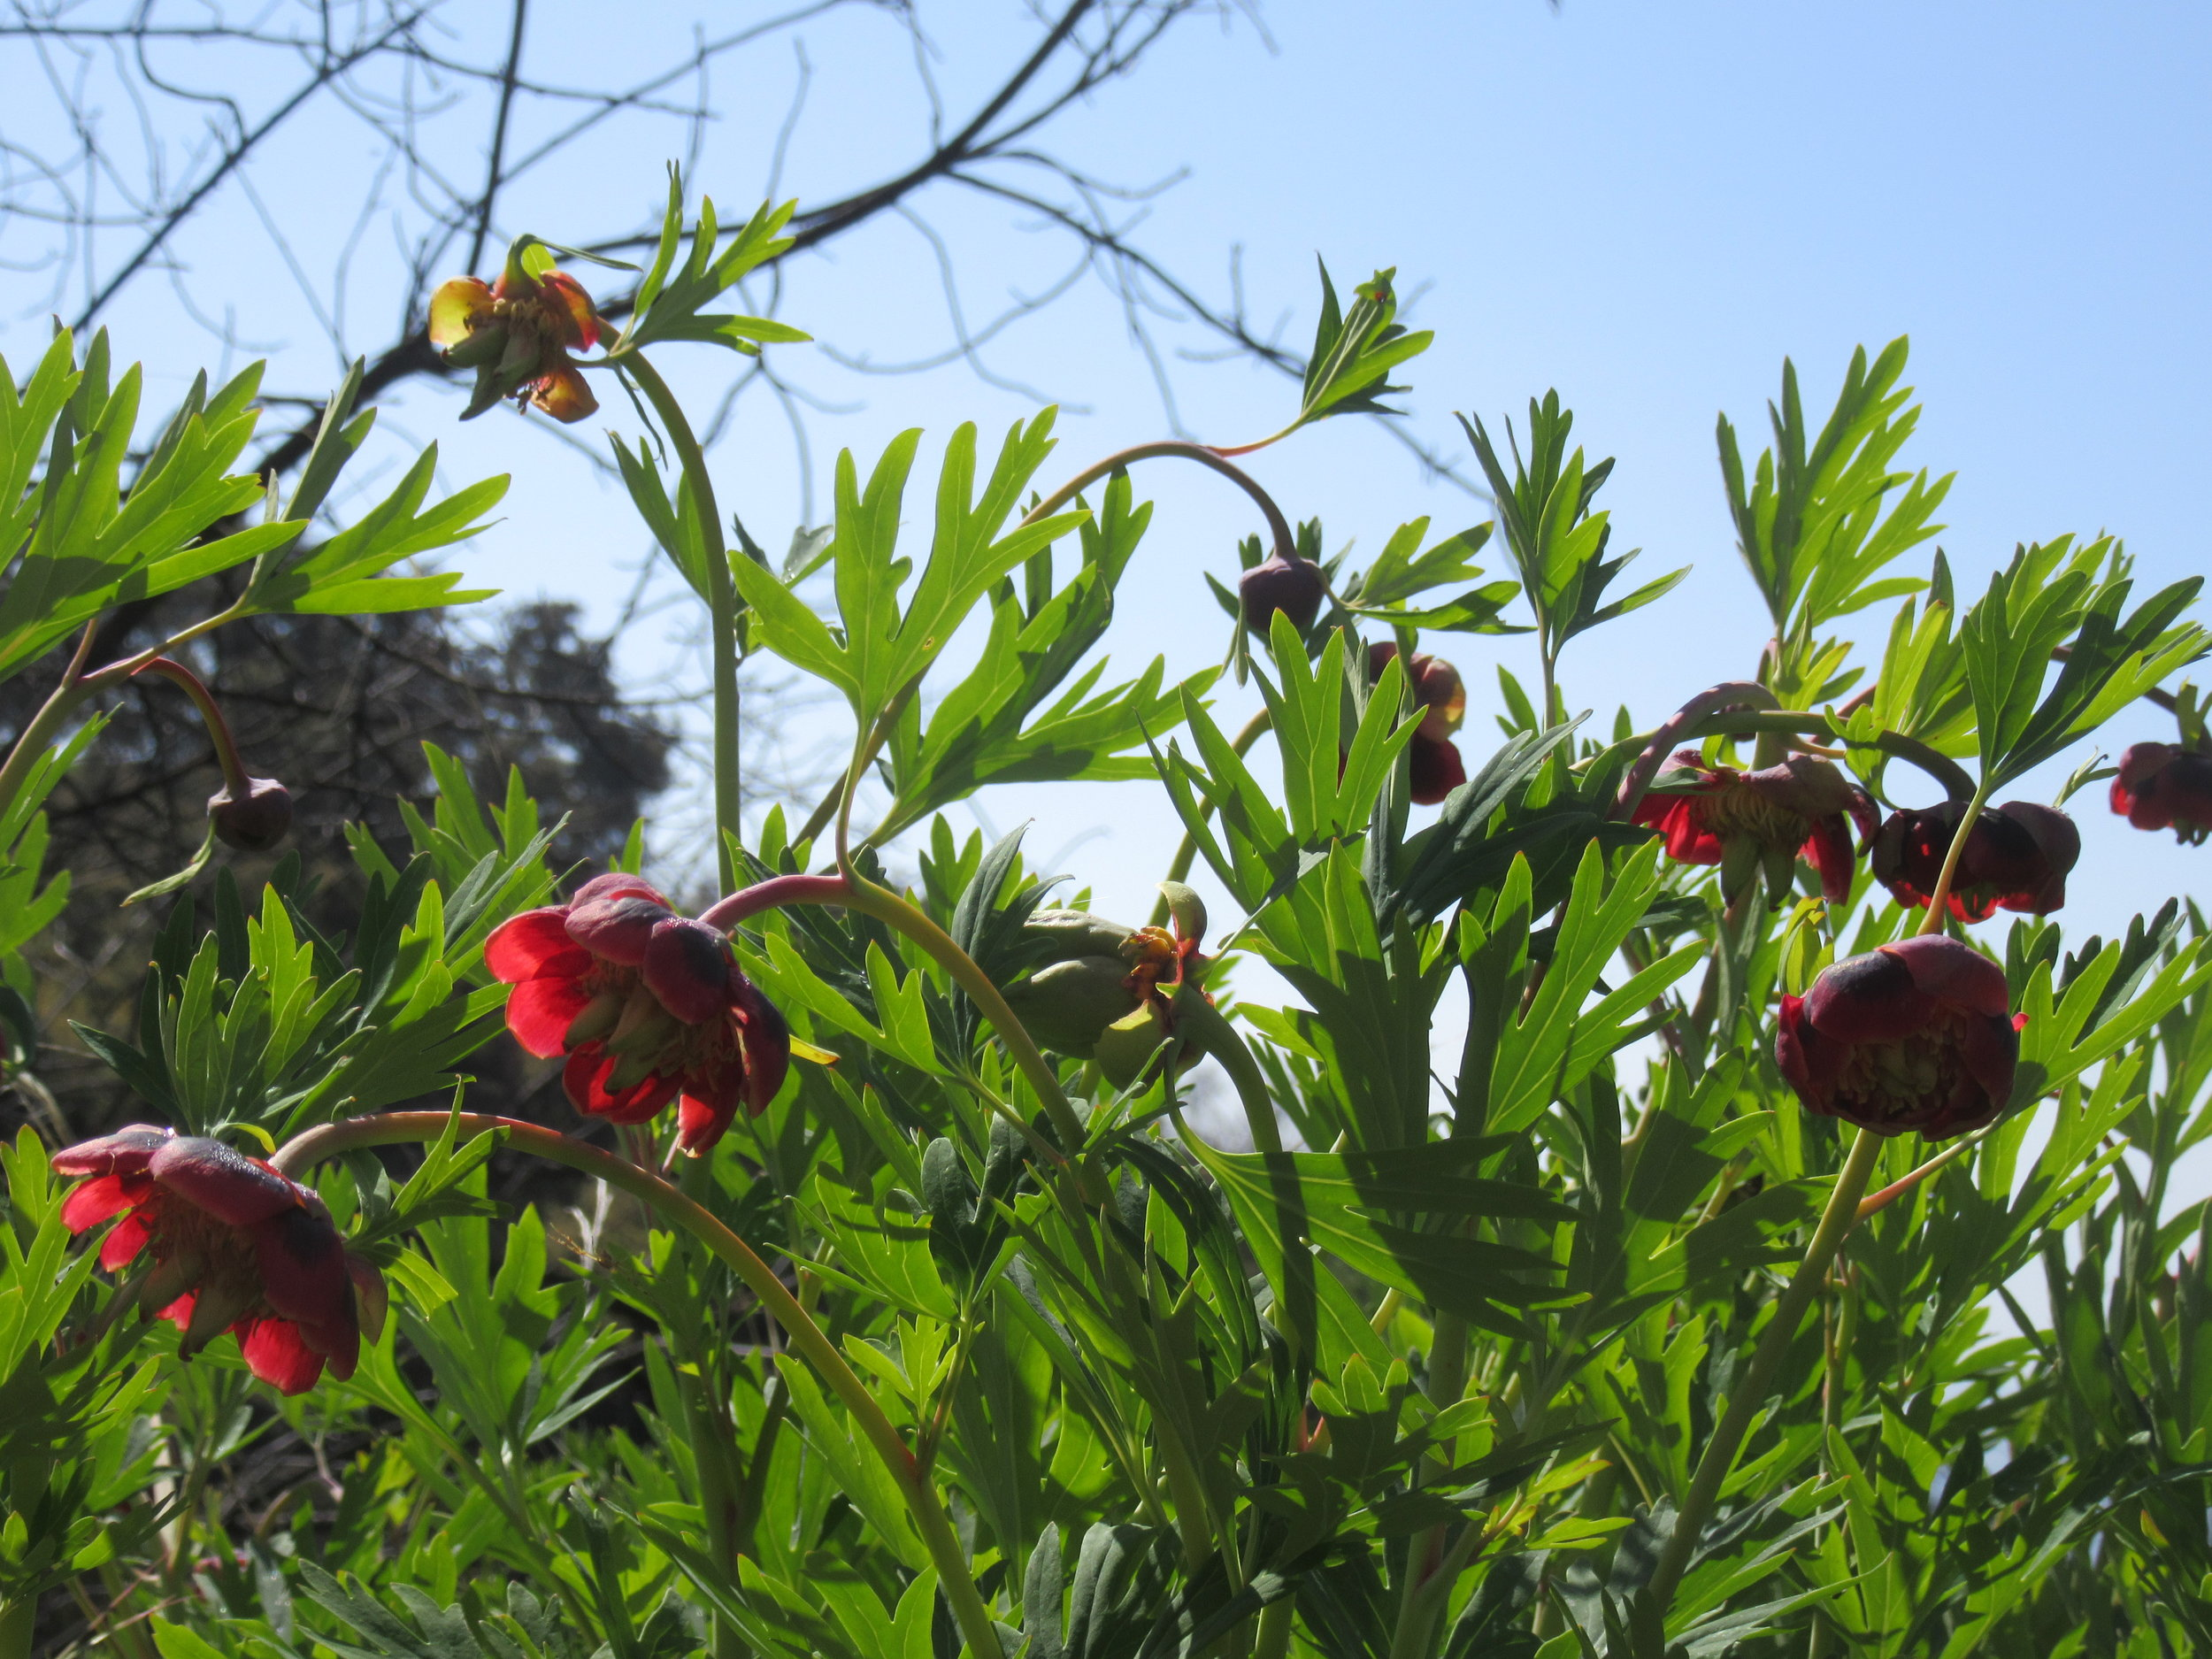 CALIFORNIA PEONY ( Paeonia californica  ) was blooming for the native plant hike at Meher Mount led by Rick Burgess of the California Native Plant Society, Channel Islands chapter. (Photo: Sam Ervin, March 24, 2019)